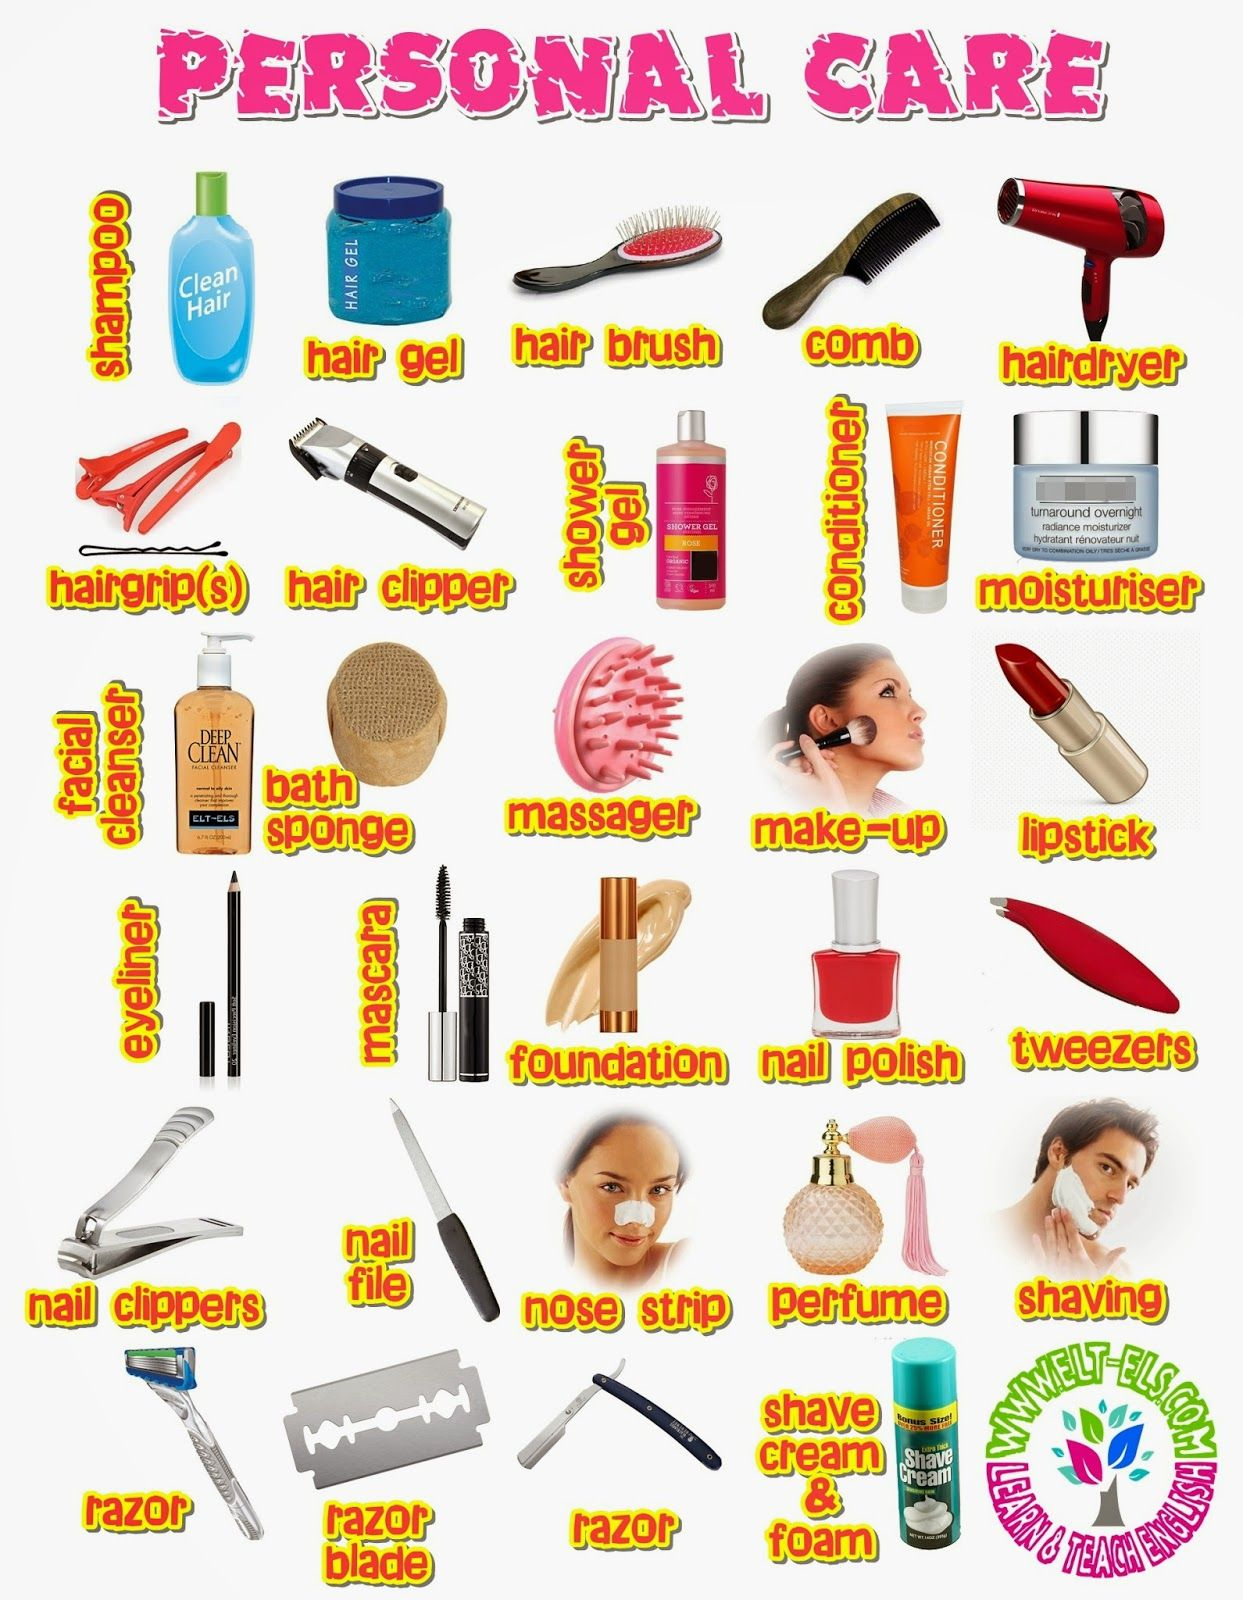 Personal Care Vocabulary